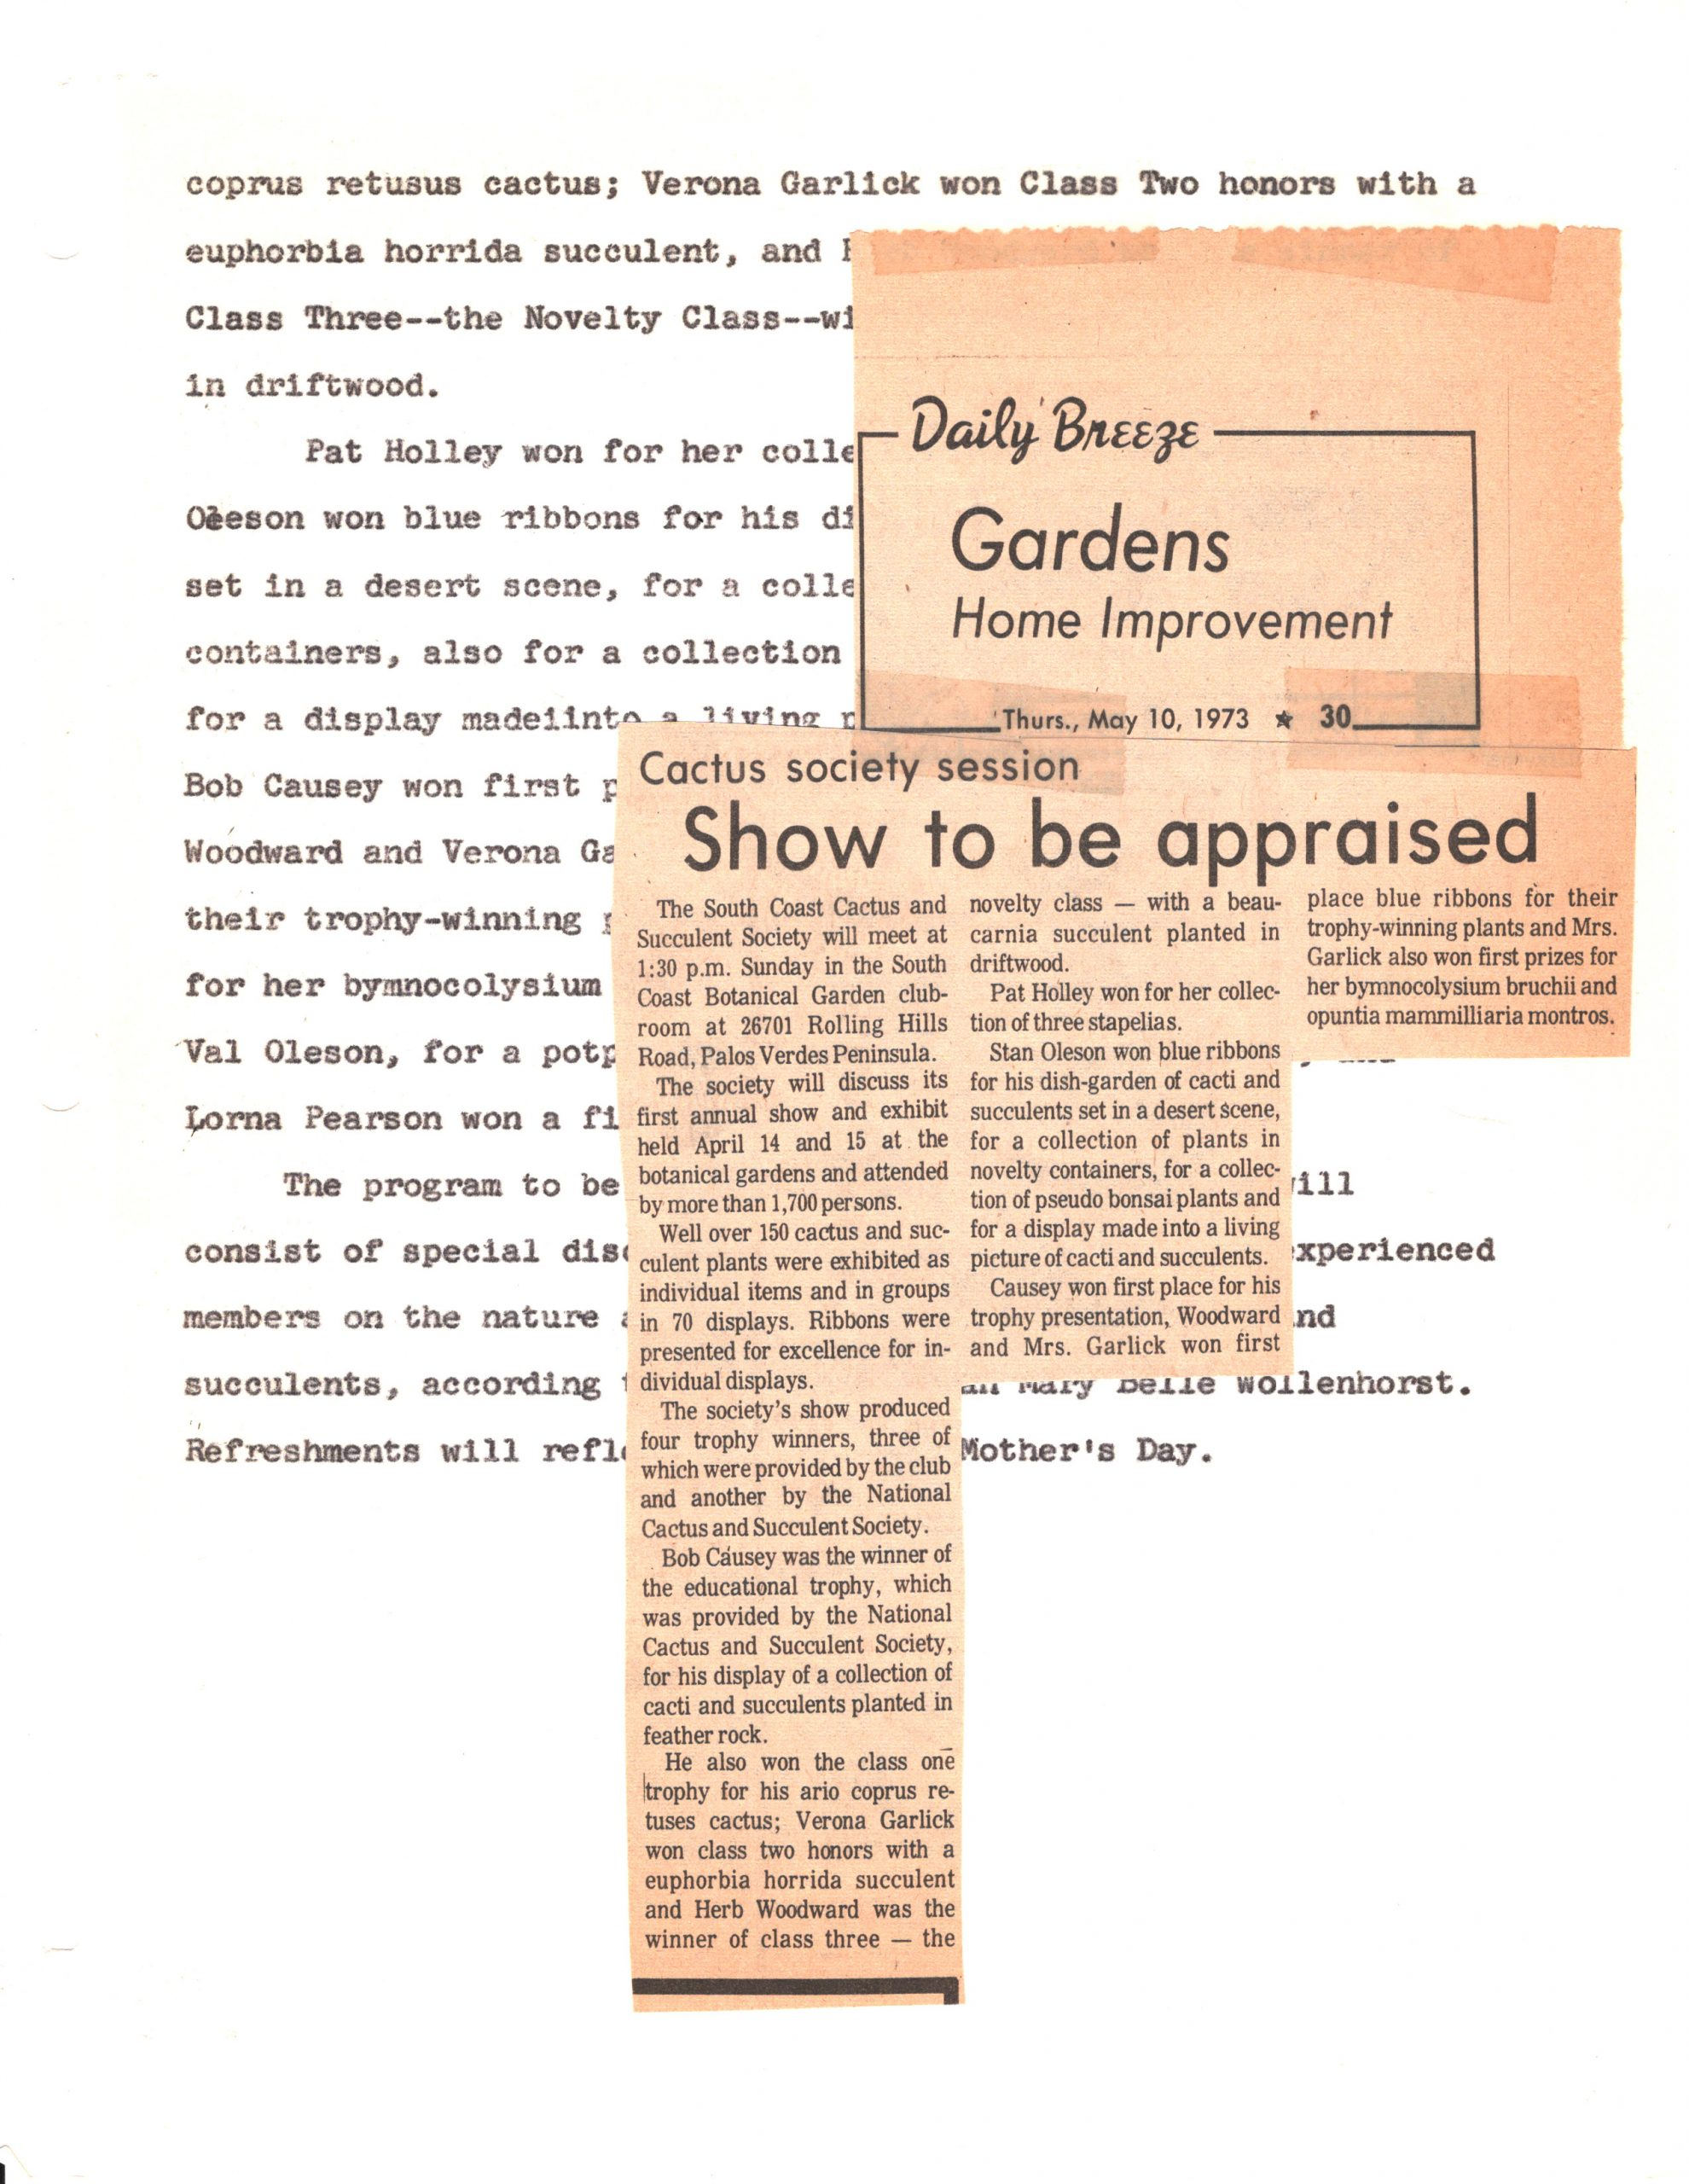 SCCSS-Cuttings-1973-05-10